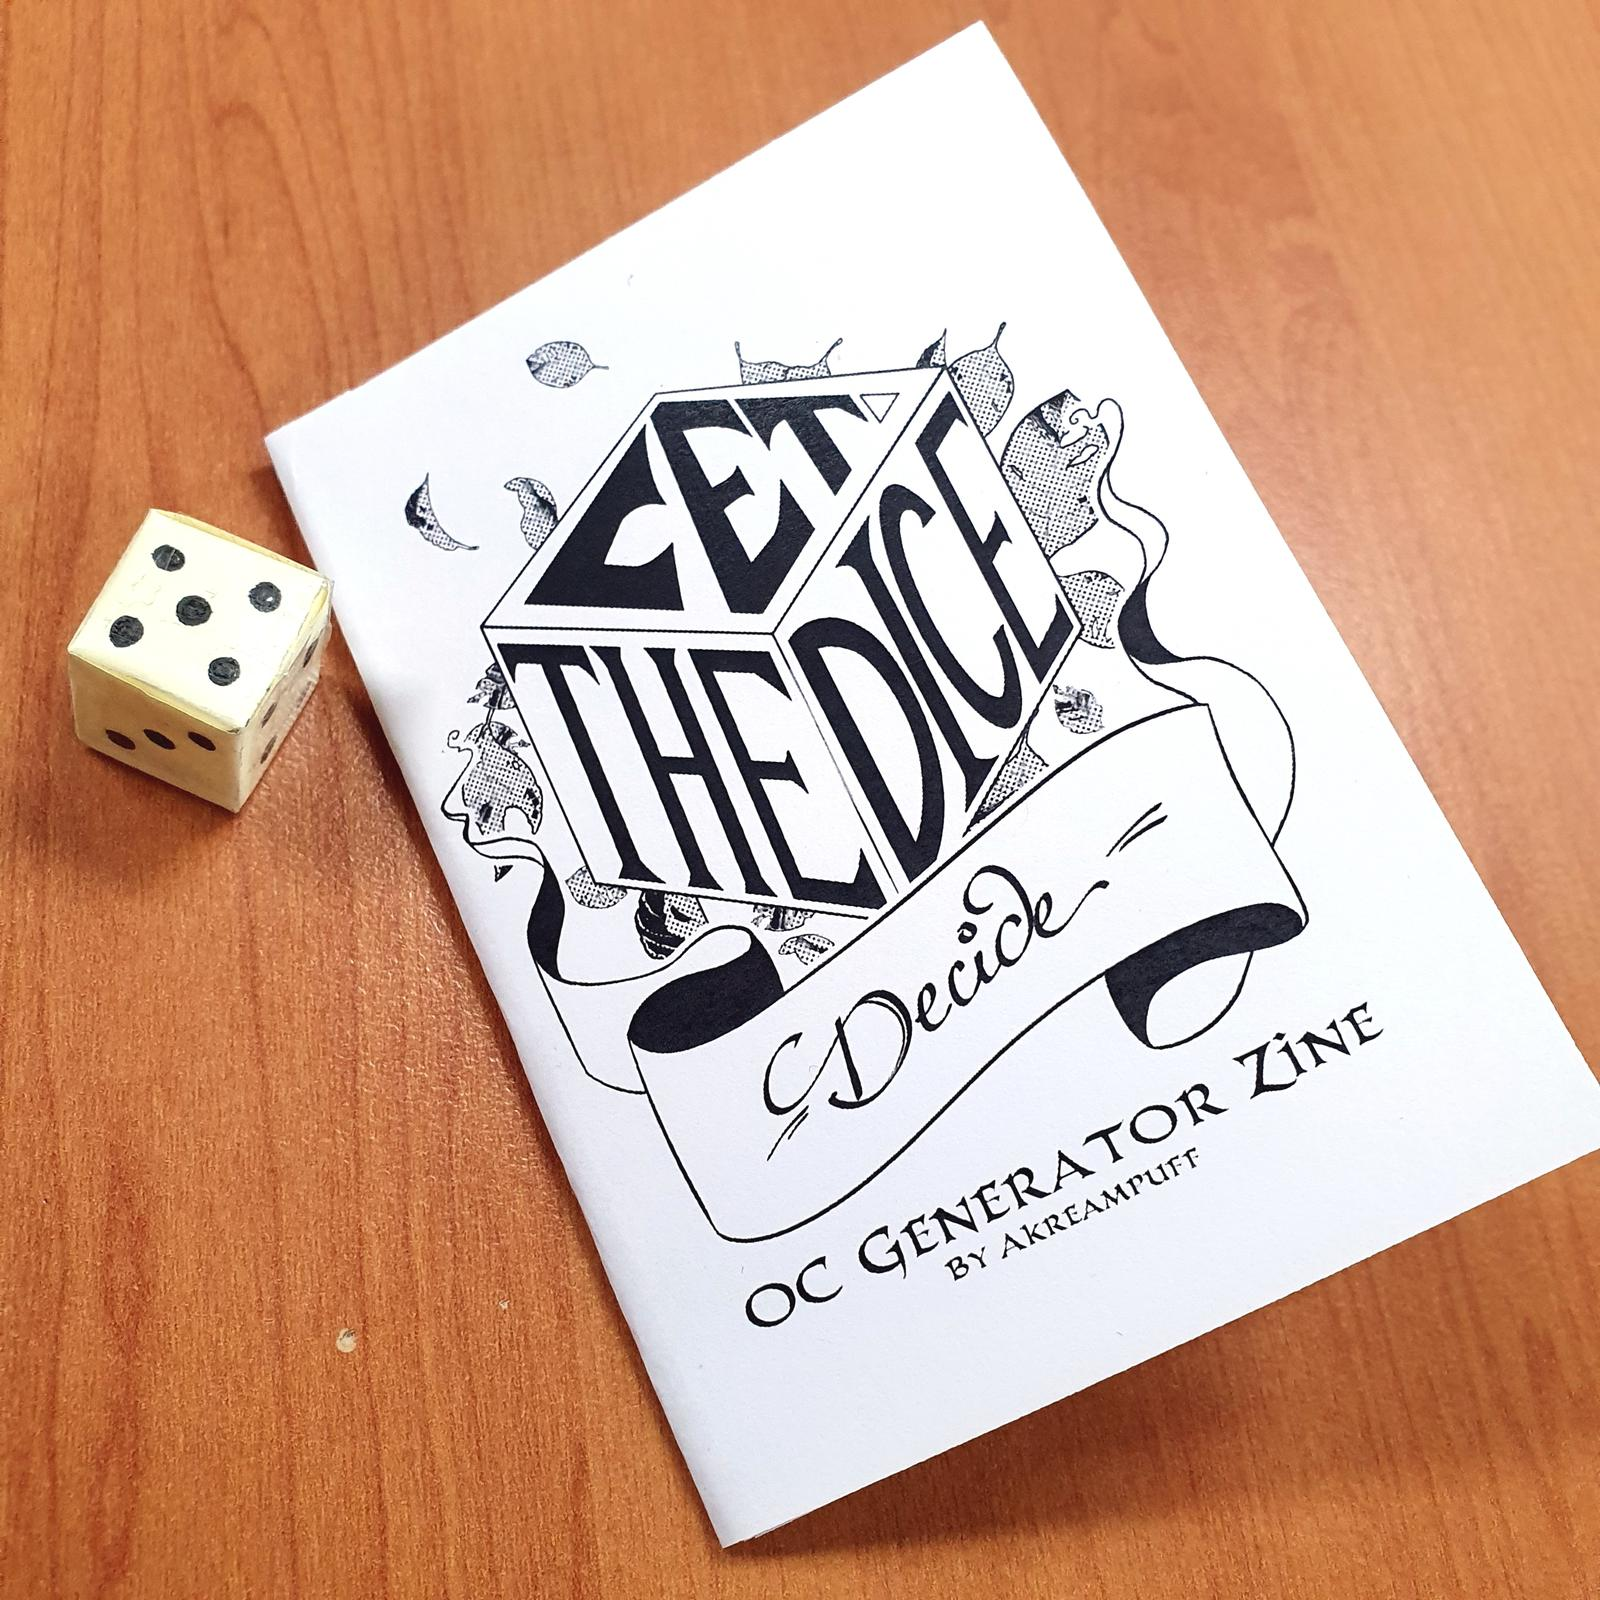 Let the Dice Decide; OC Generator Zine